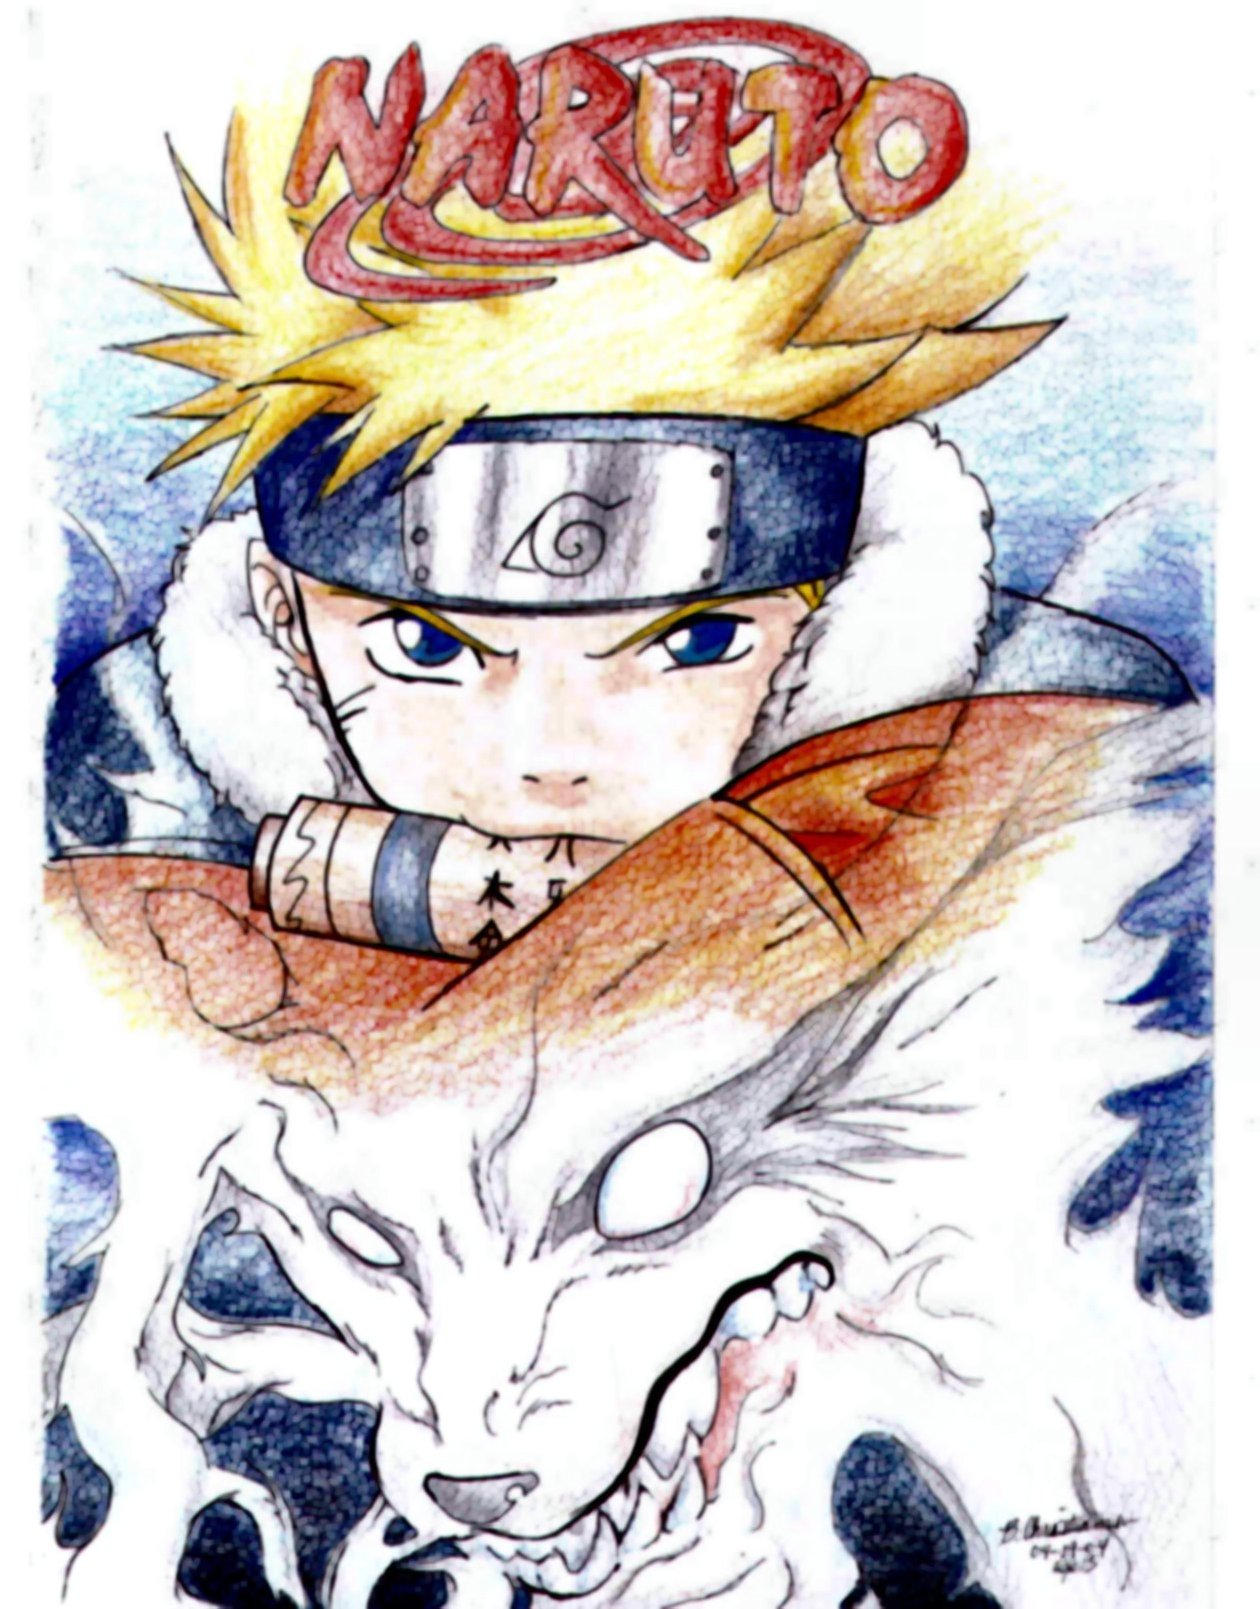 Naruto the fox demon by krzyii on deviantart